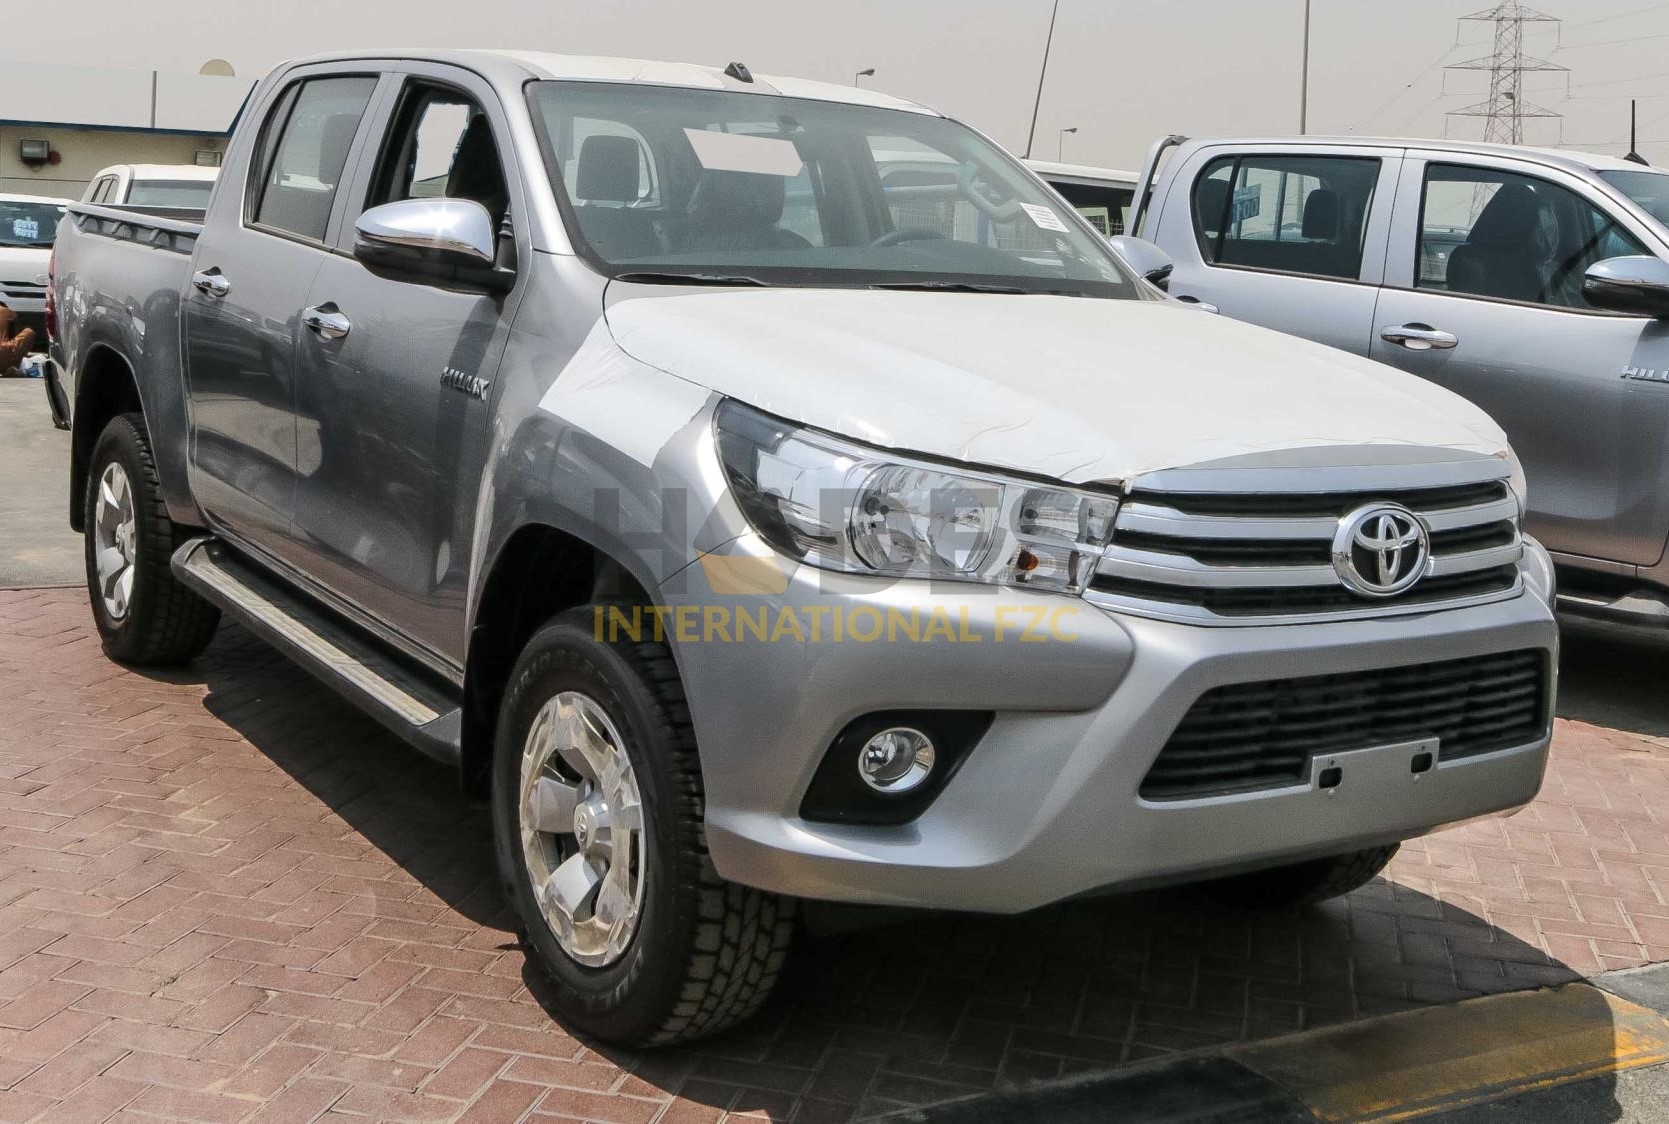 Toyota Hilux 2.4L Diesel, 4×4, Manual 2020 model